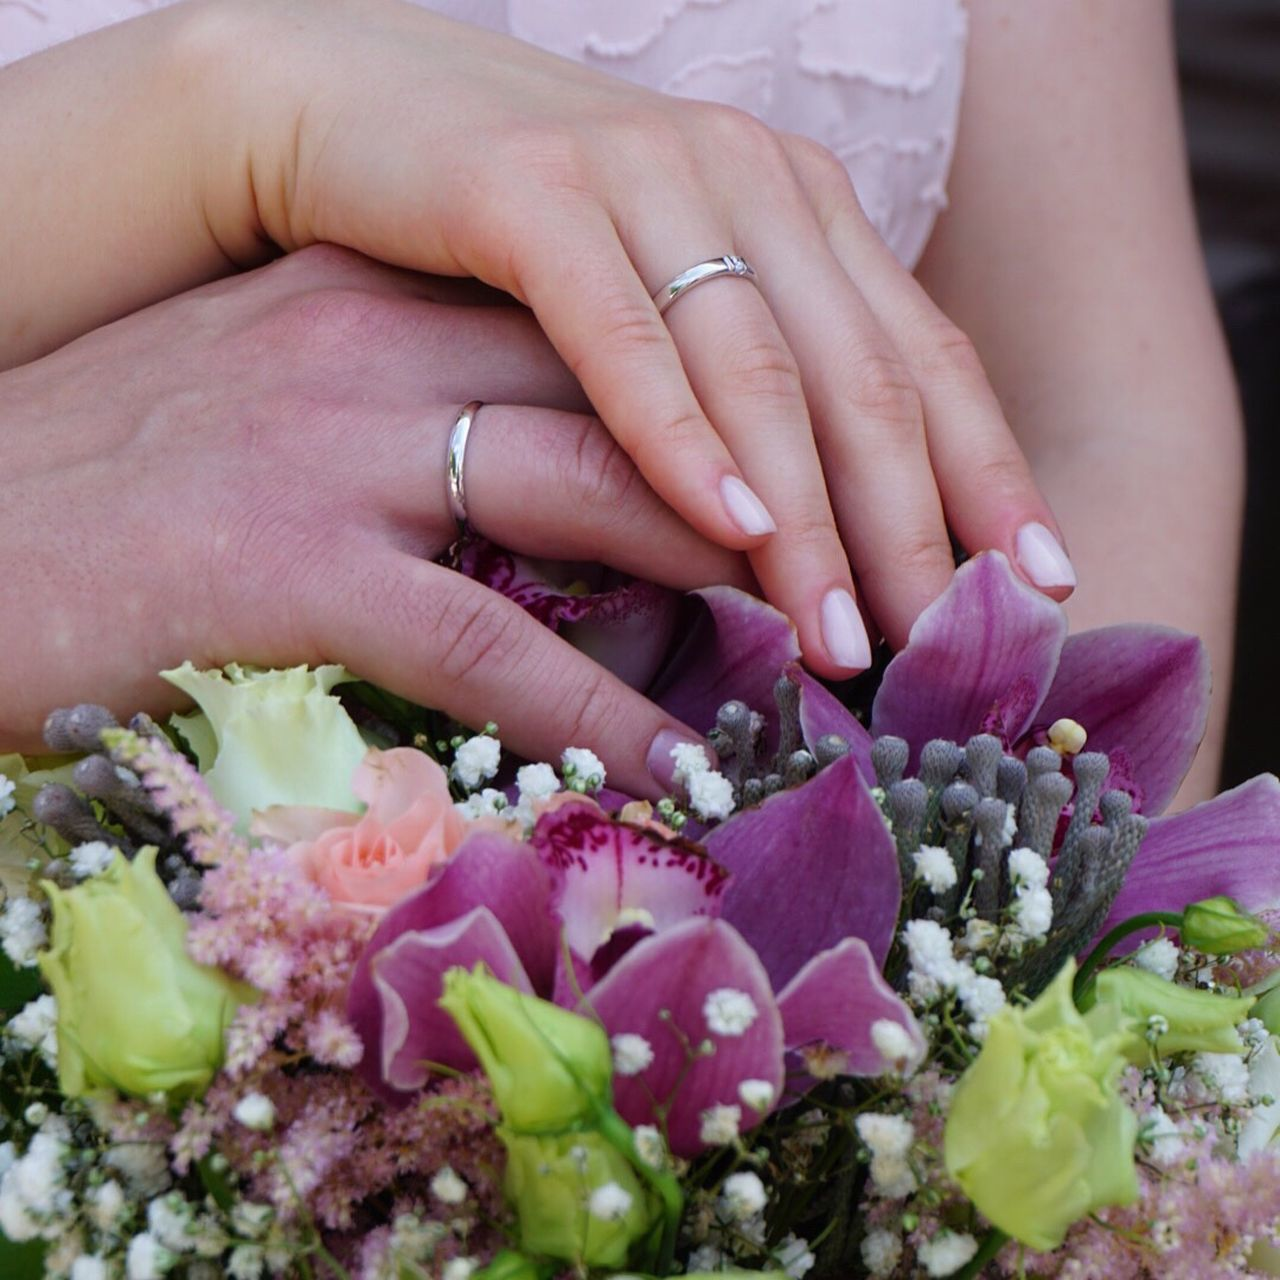 Human Hand Human Body Part Human Finger Only Women Nail Polish Ring Freshness Close-up Women Food Flower One Woman Only Healthy Eating One Person Indoors  Adult Adults Only People Day Married Start